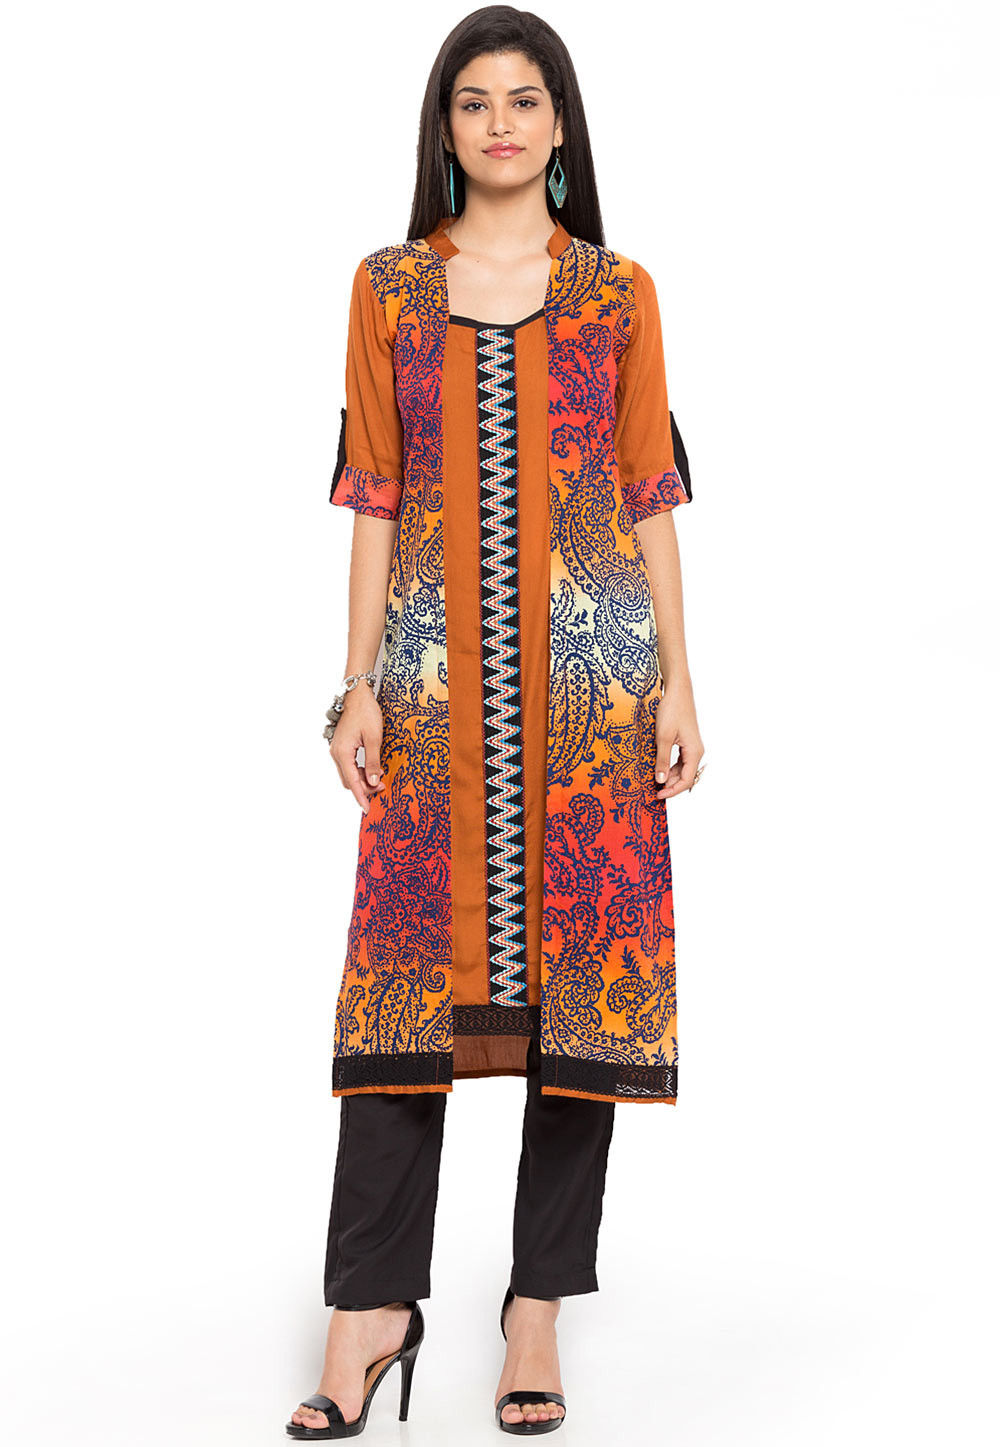 Printed Cotton Jacket Style Kurta in Rust and Multicolor